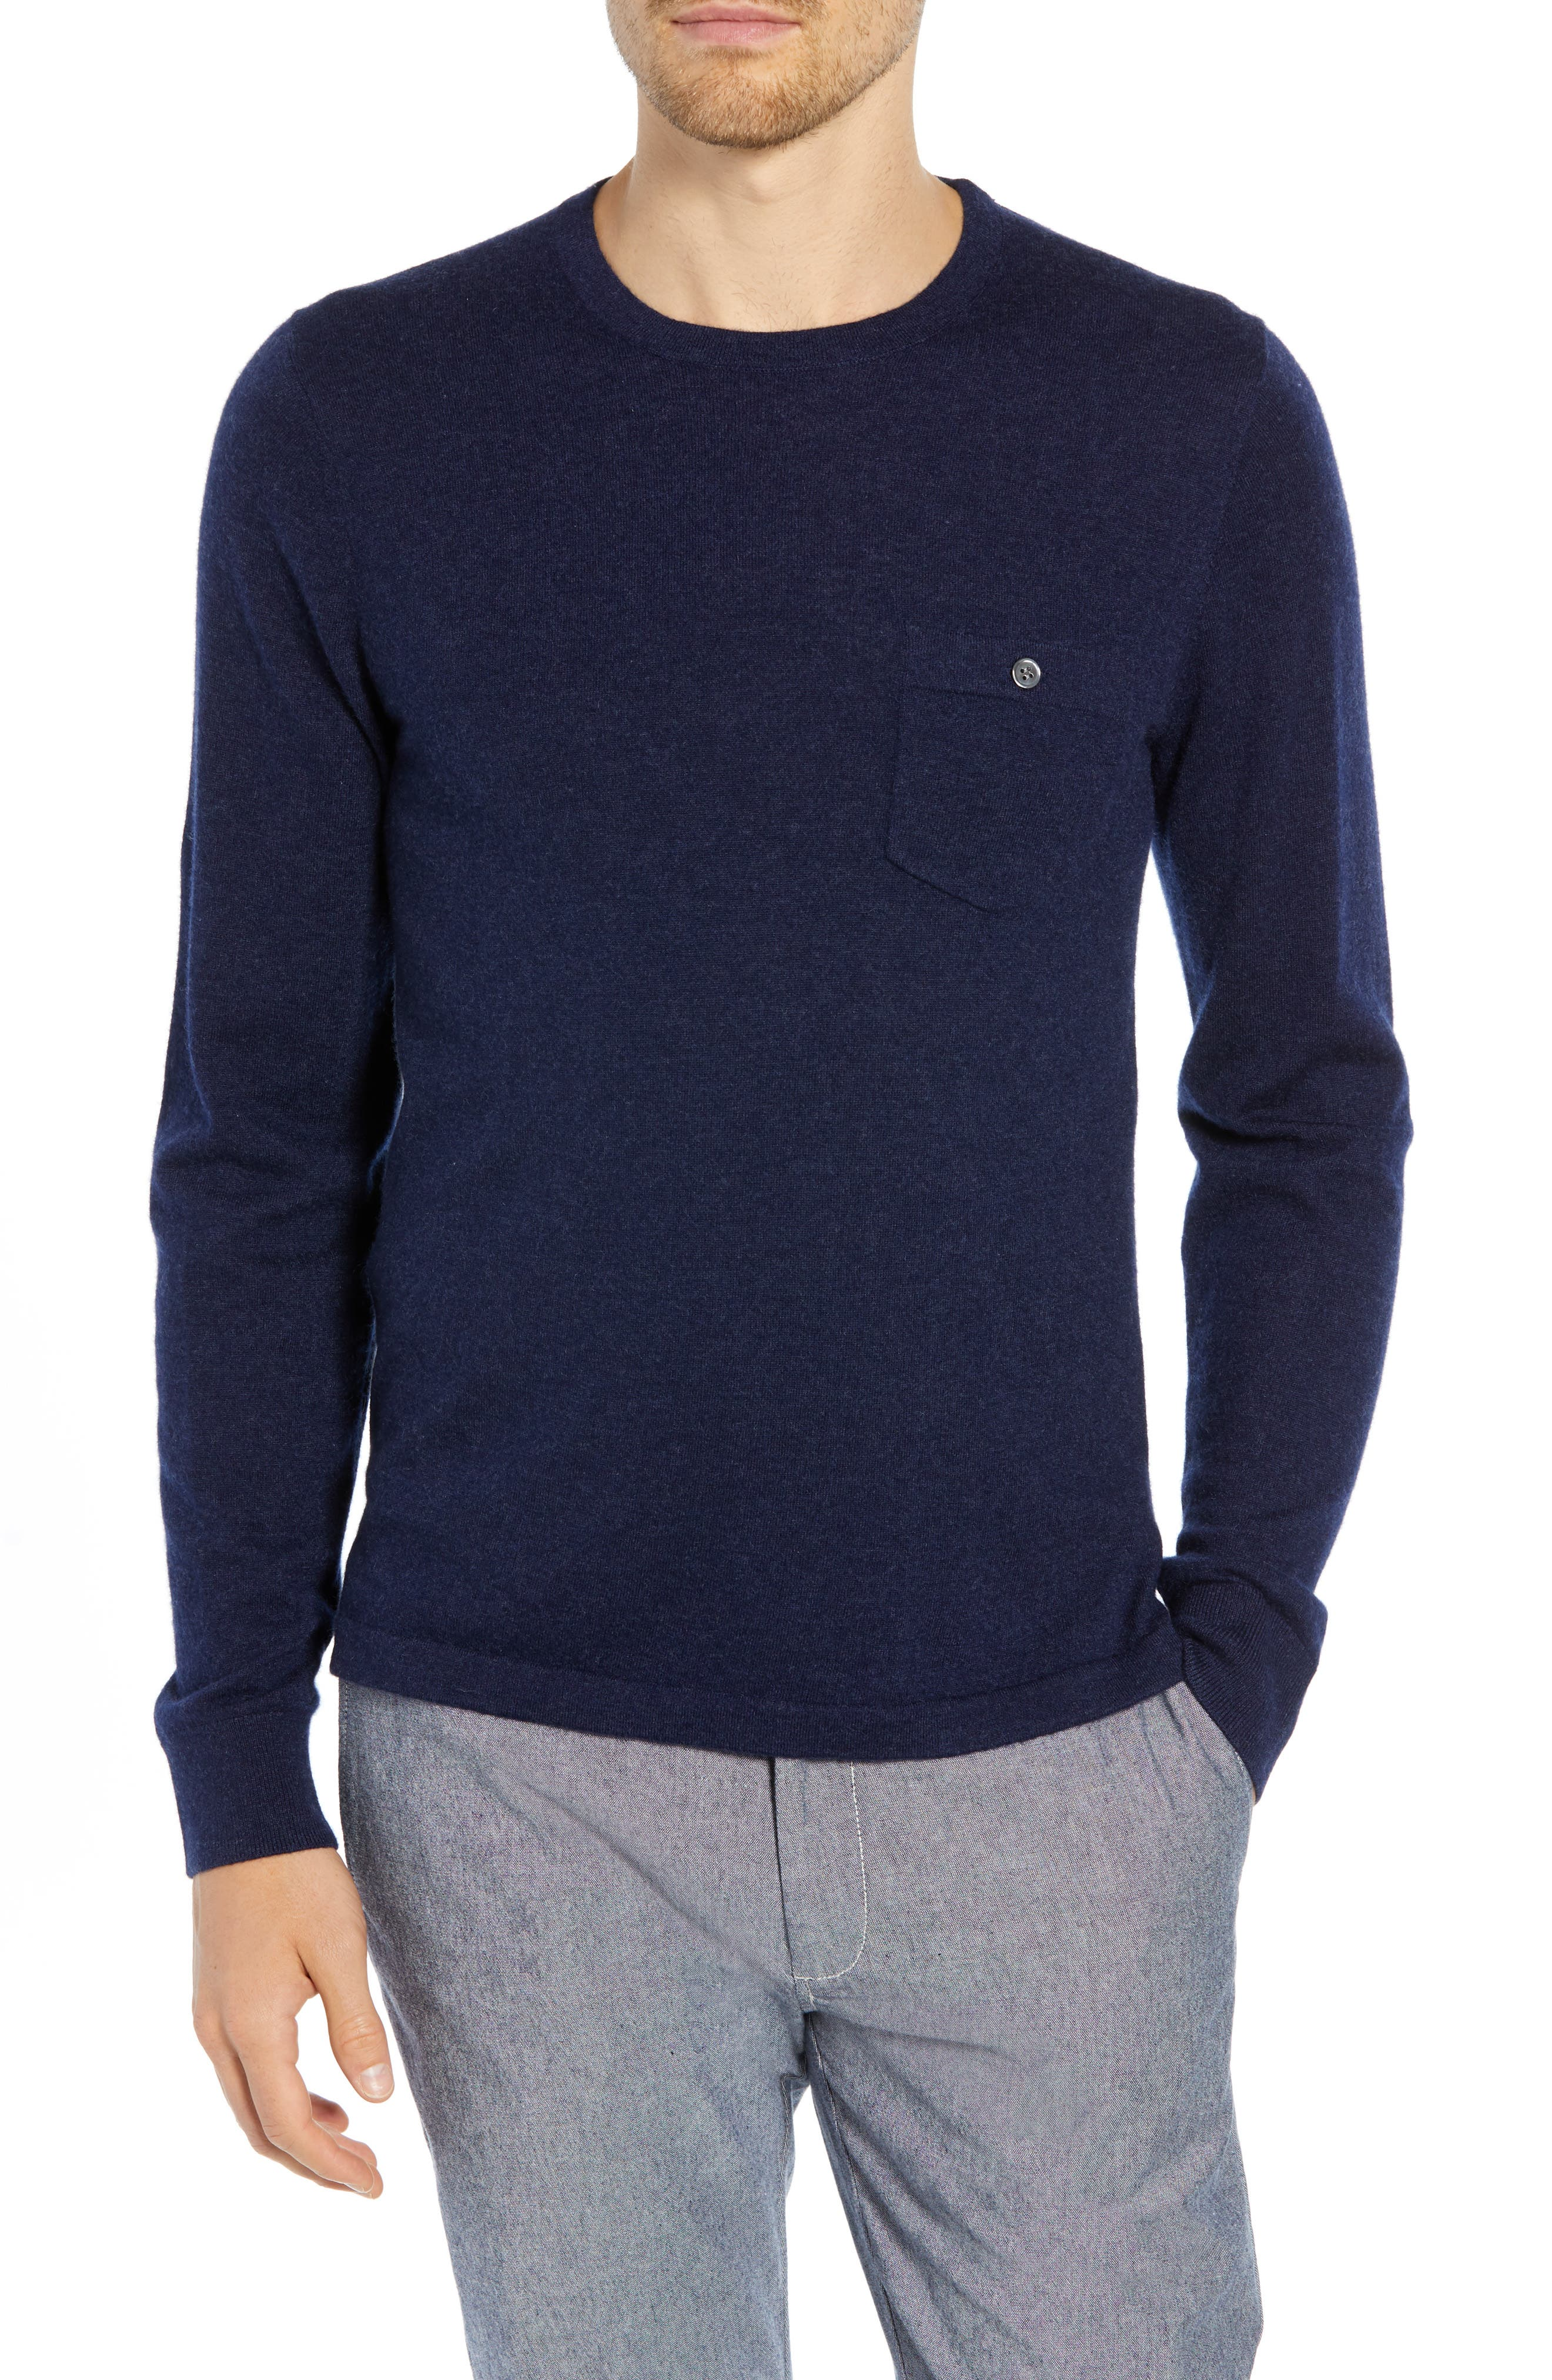 Cashmere Sweater,                             Main thumbnail 1, color,                             475